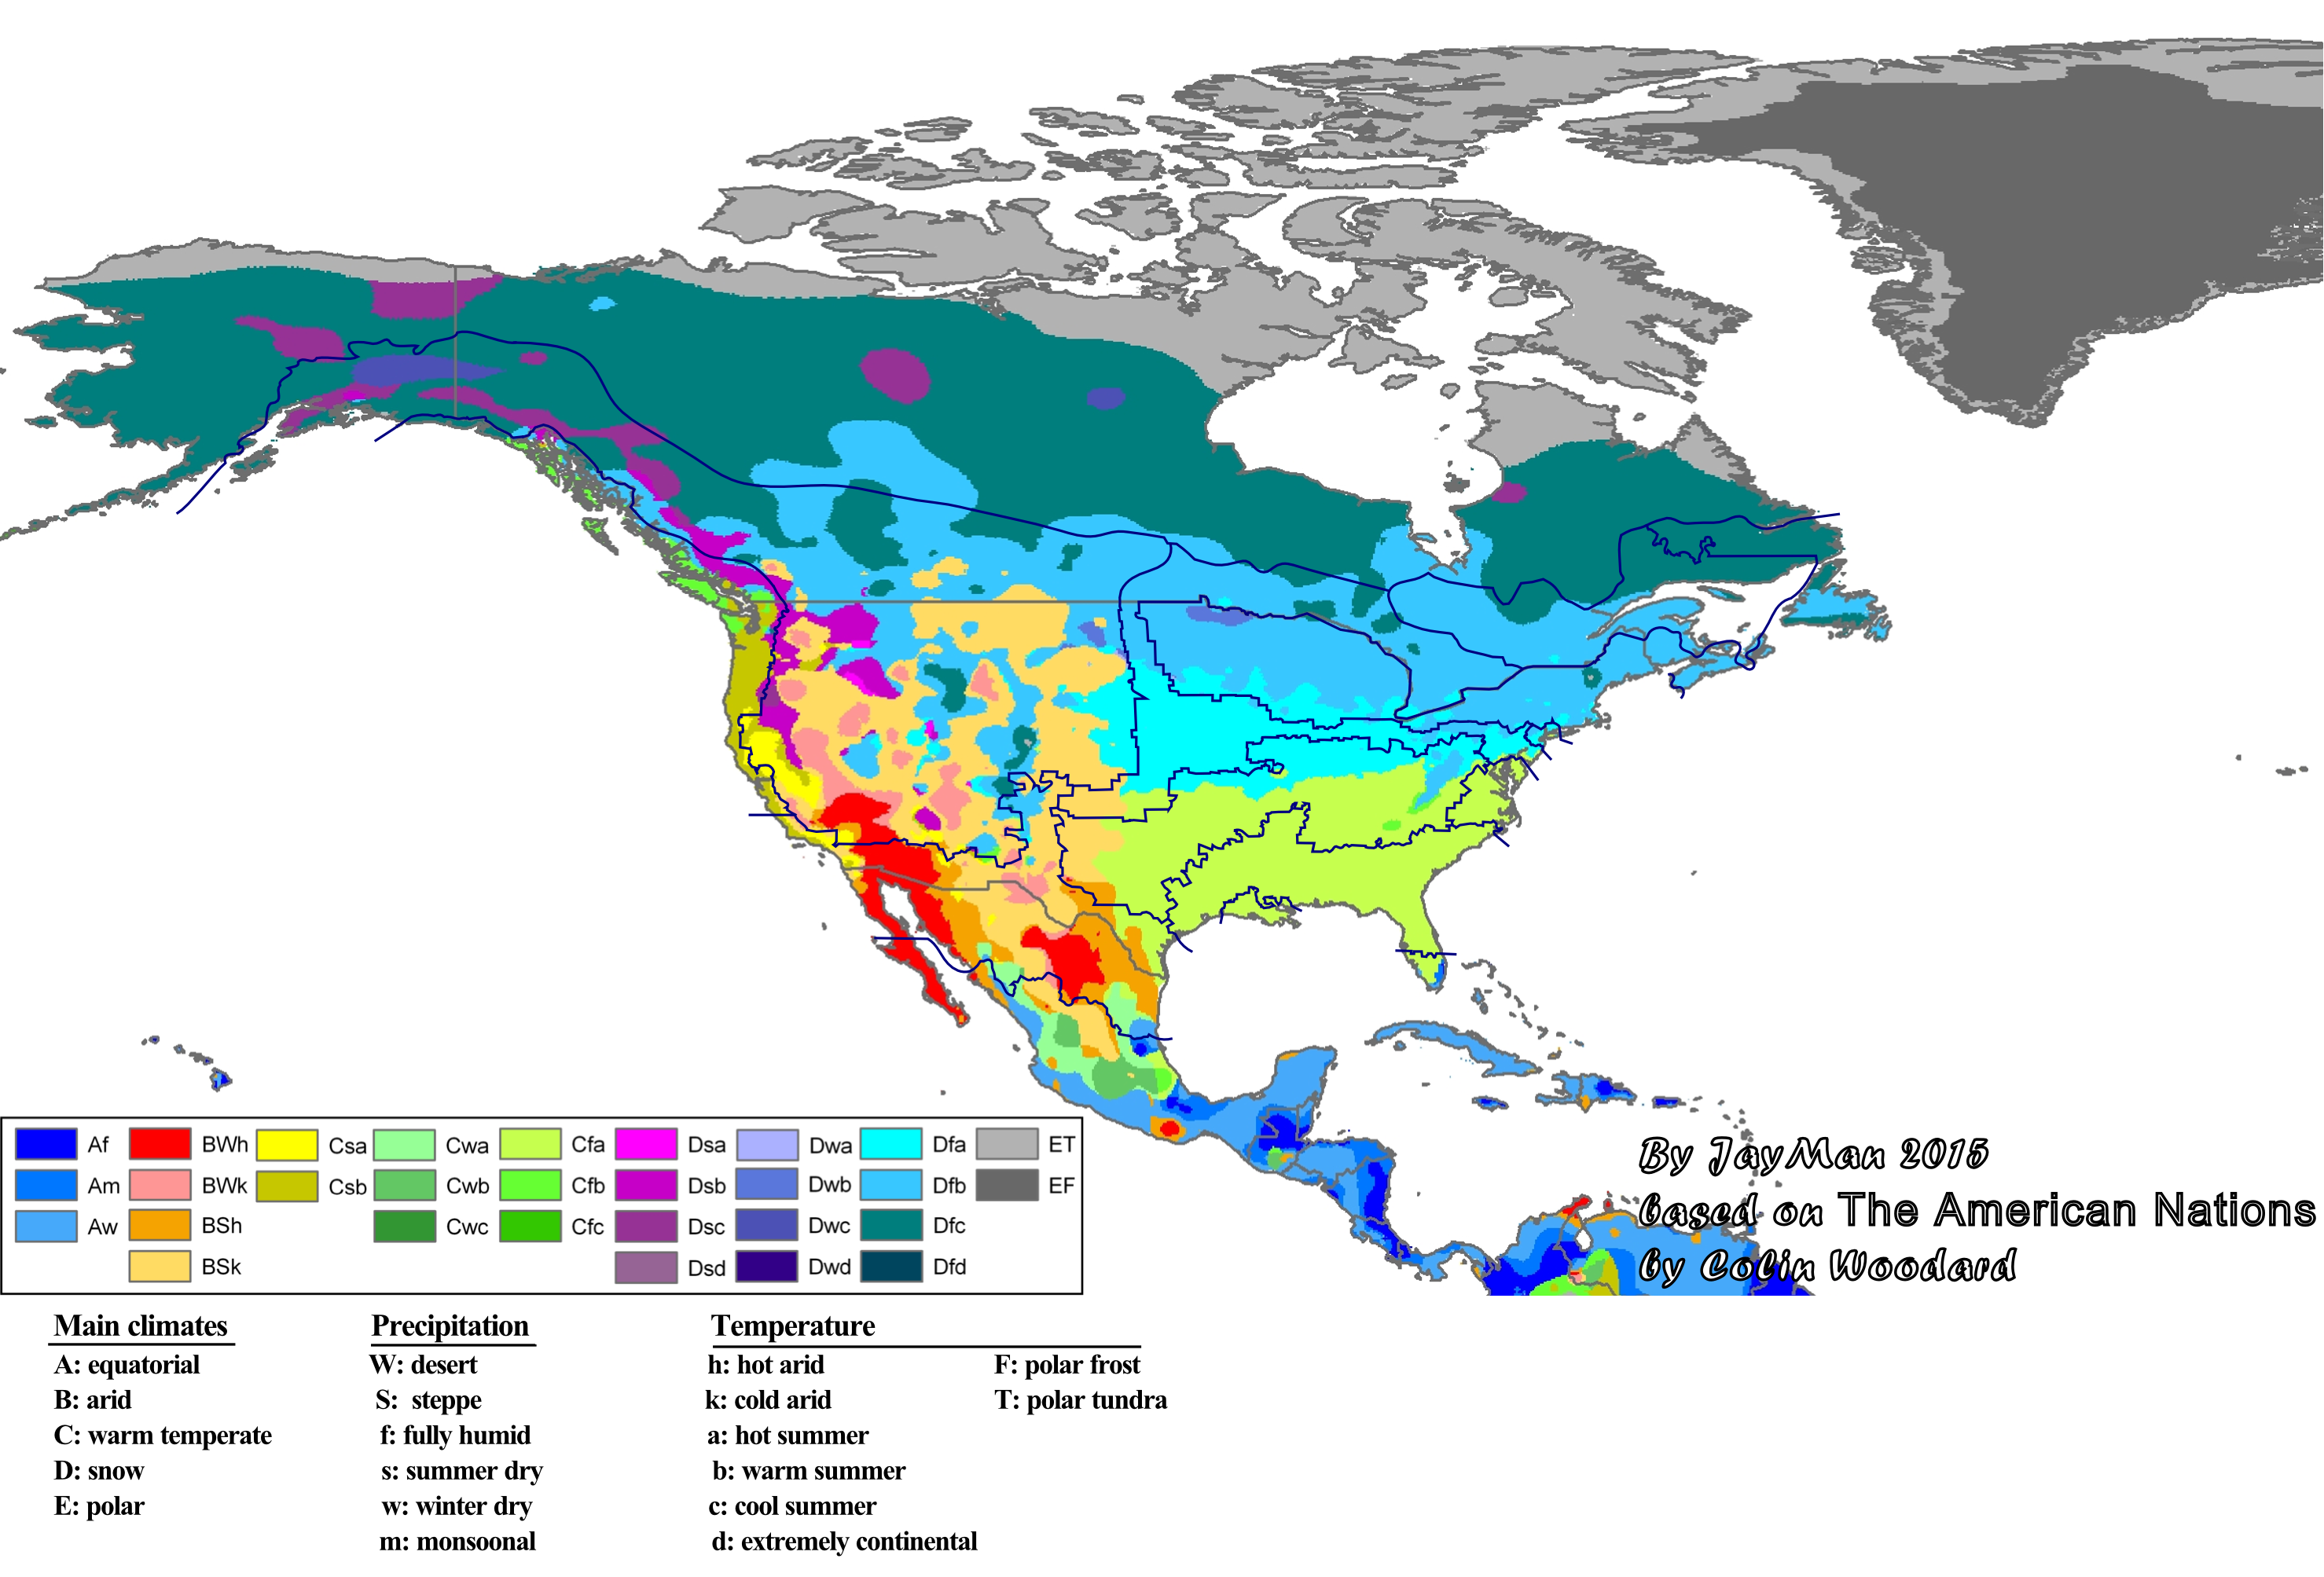 Genes Climate And Even More Maps Of The American Nations - Us railroad map 2015